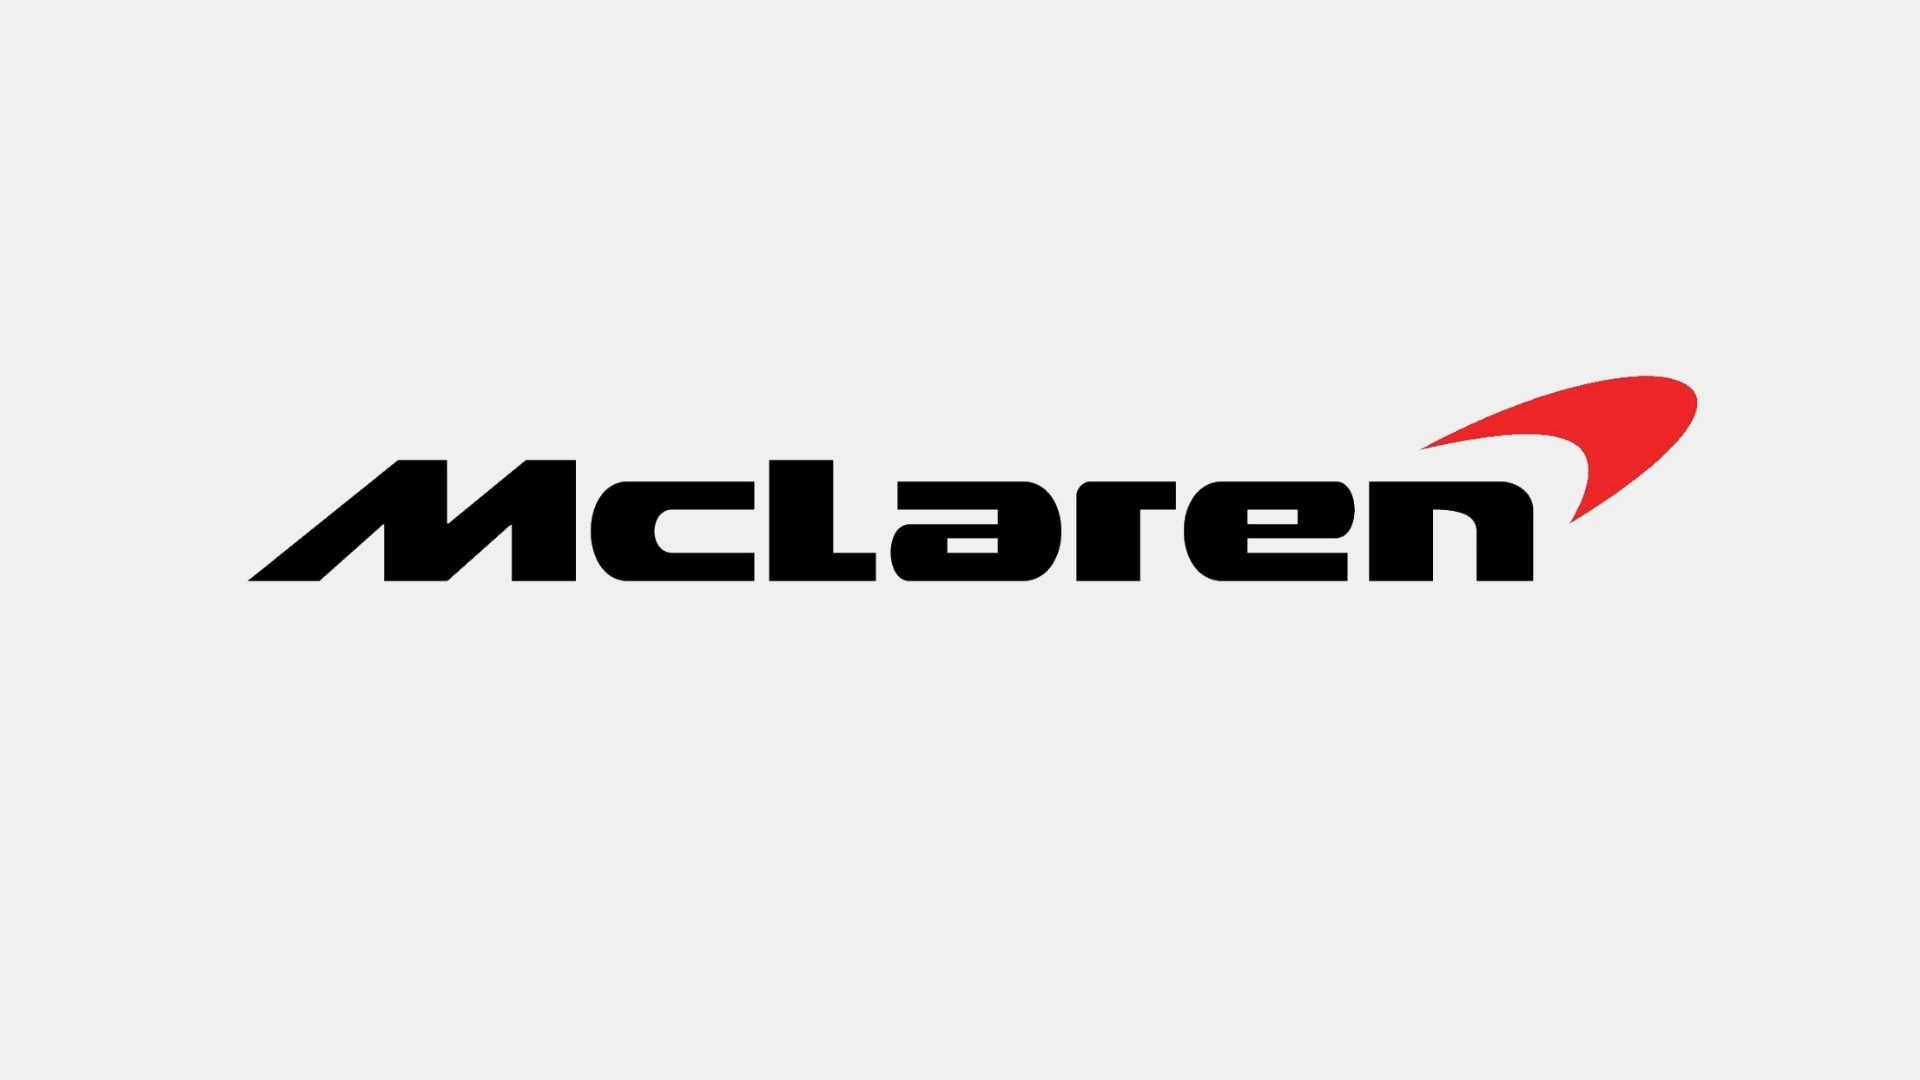 f05678fa3aaab 1920 x 1080px mclaren logo photography wallpaper free by Ervin Bishop